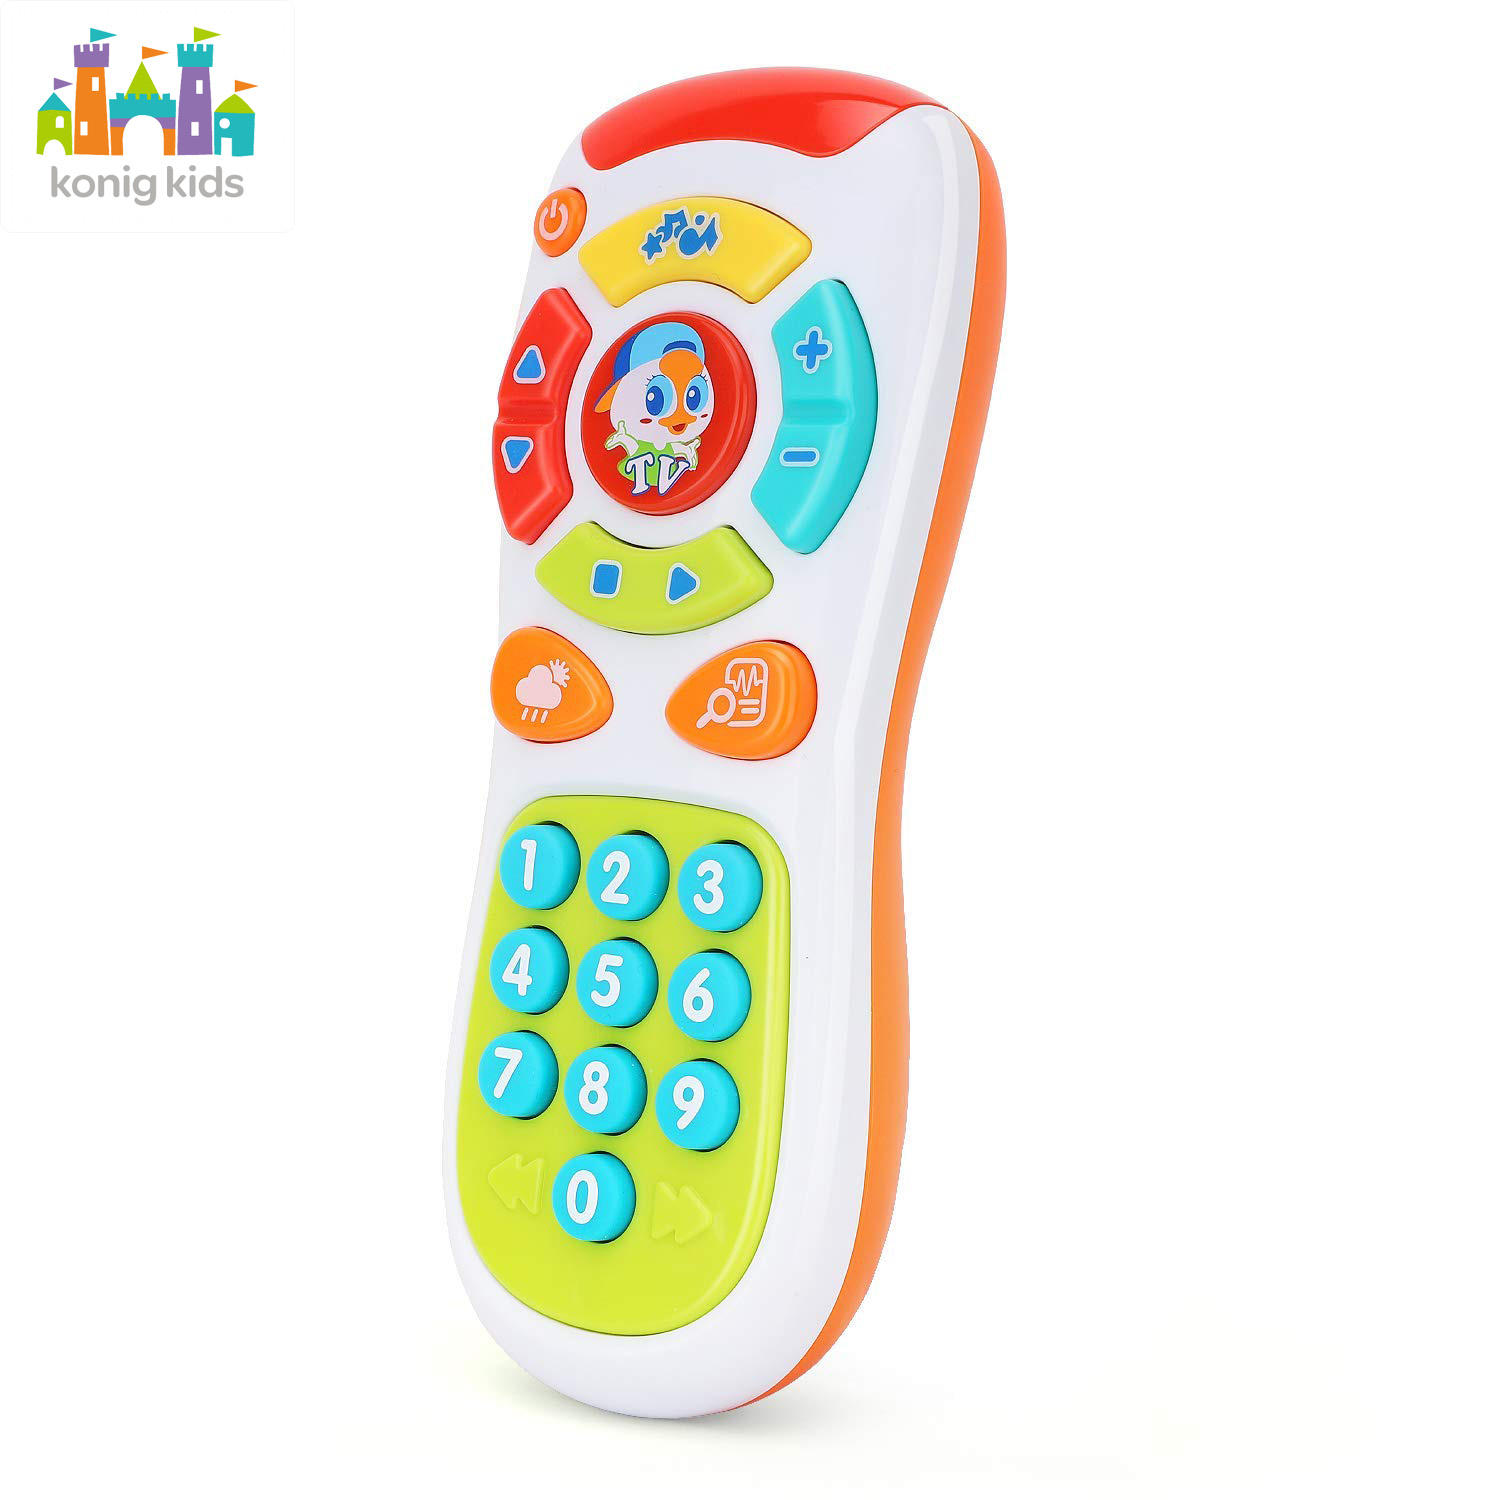 Konig Kids Plastic Music Remote Toy Baby Mobile Phone Control Toys